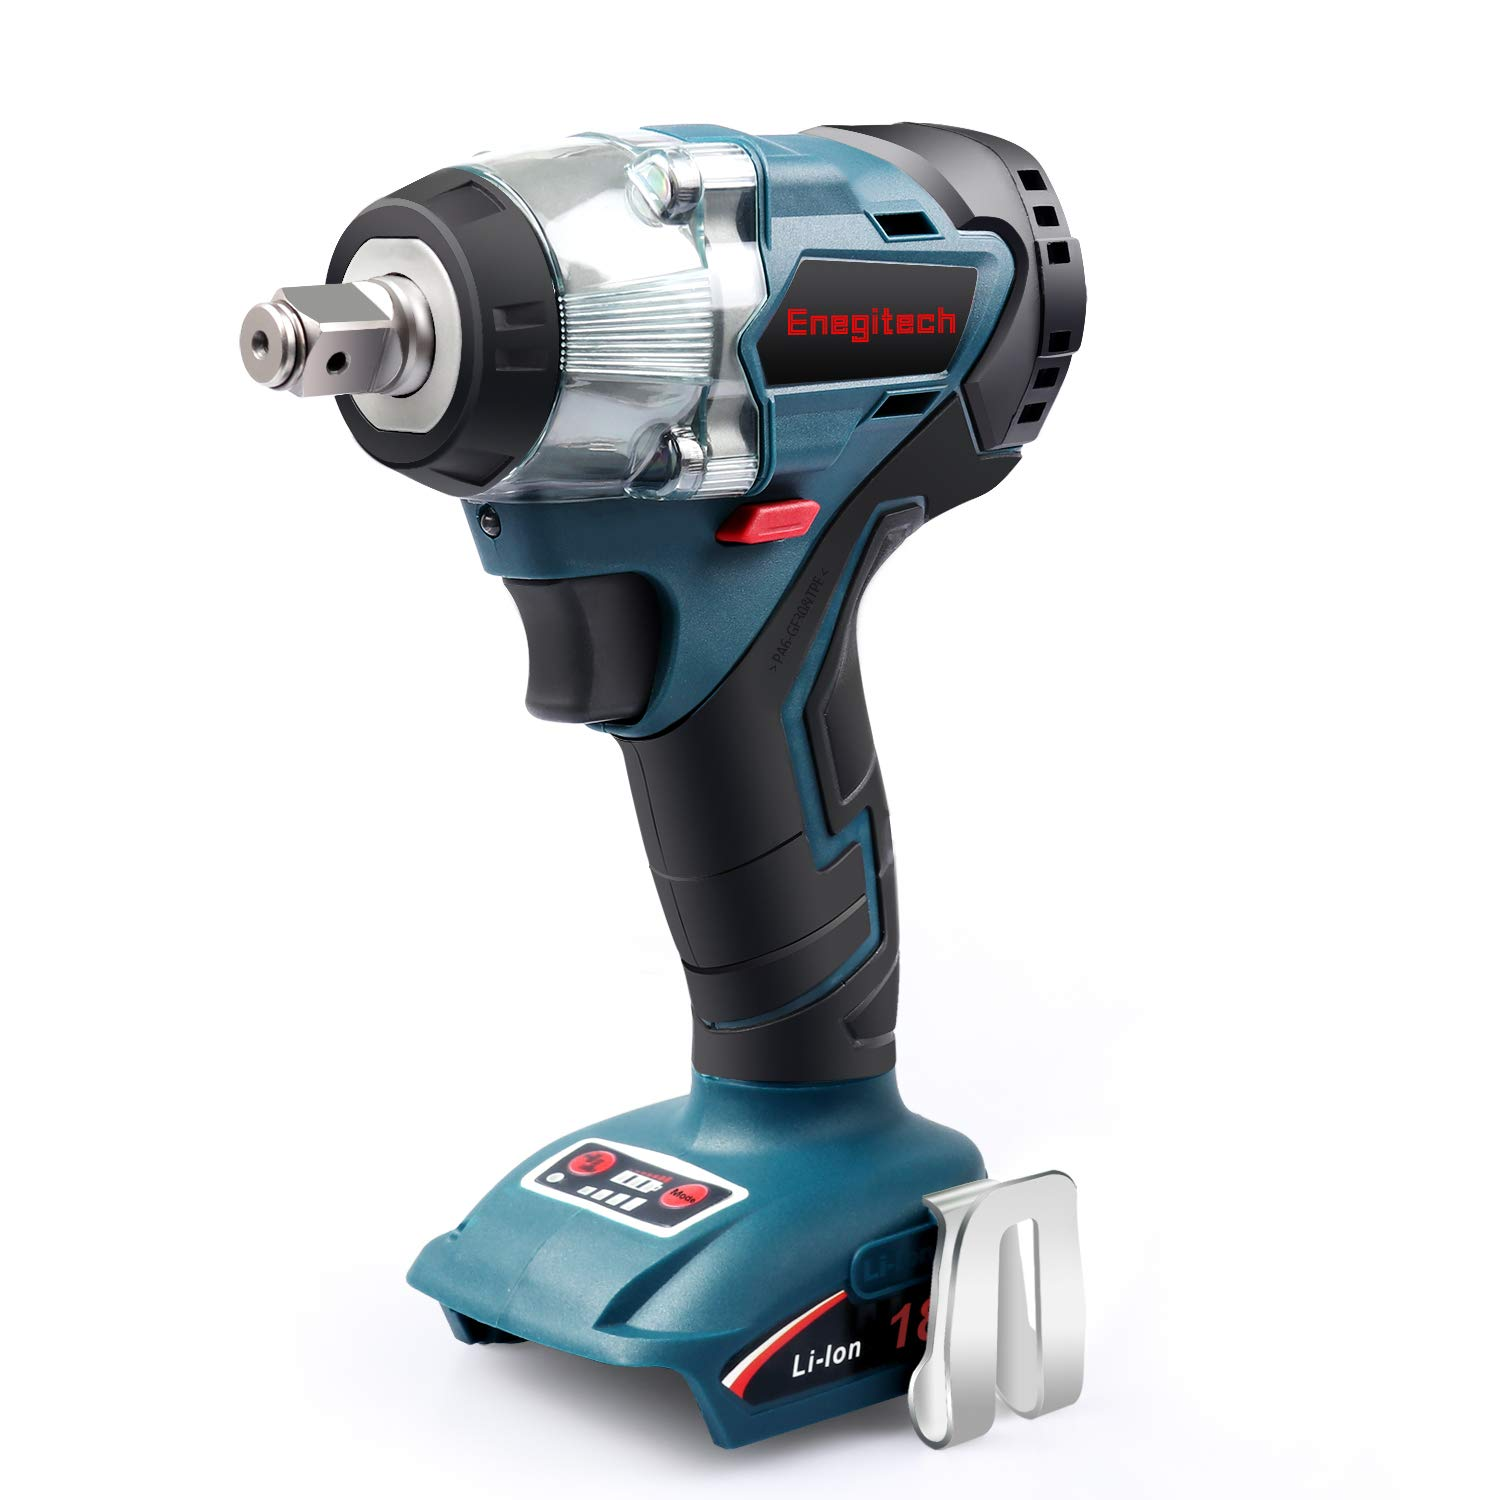 Enegitech 18V Cordless Impact Wrench Brushless, 4 Rev 1/2'' Automatic Power Tool for Car Tyre, Compatible with Makita 18 volt Lithium-Ion Battery(Tool Only) by Enegitech (Image #1)